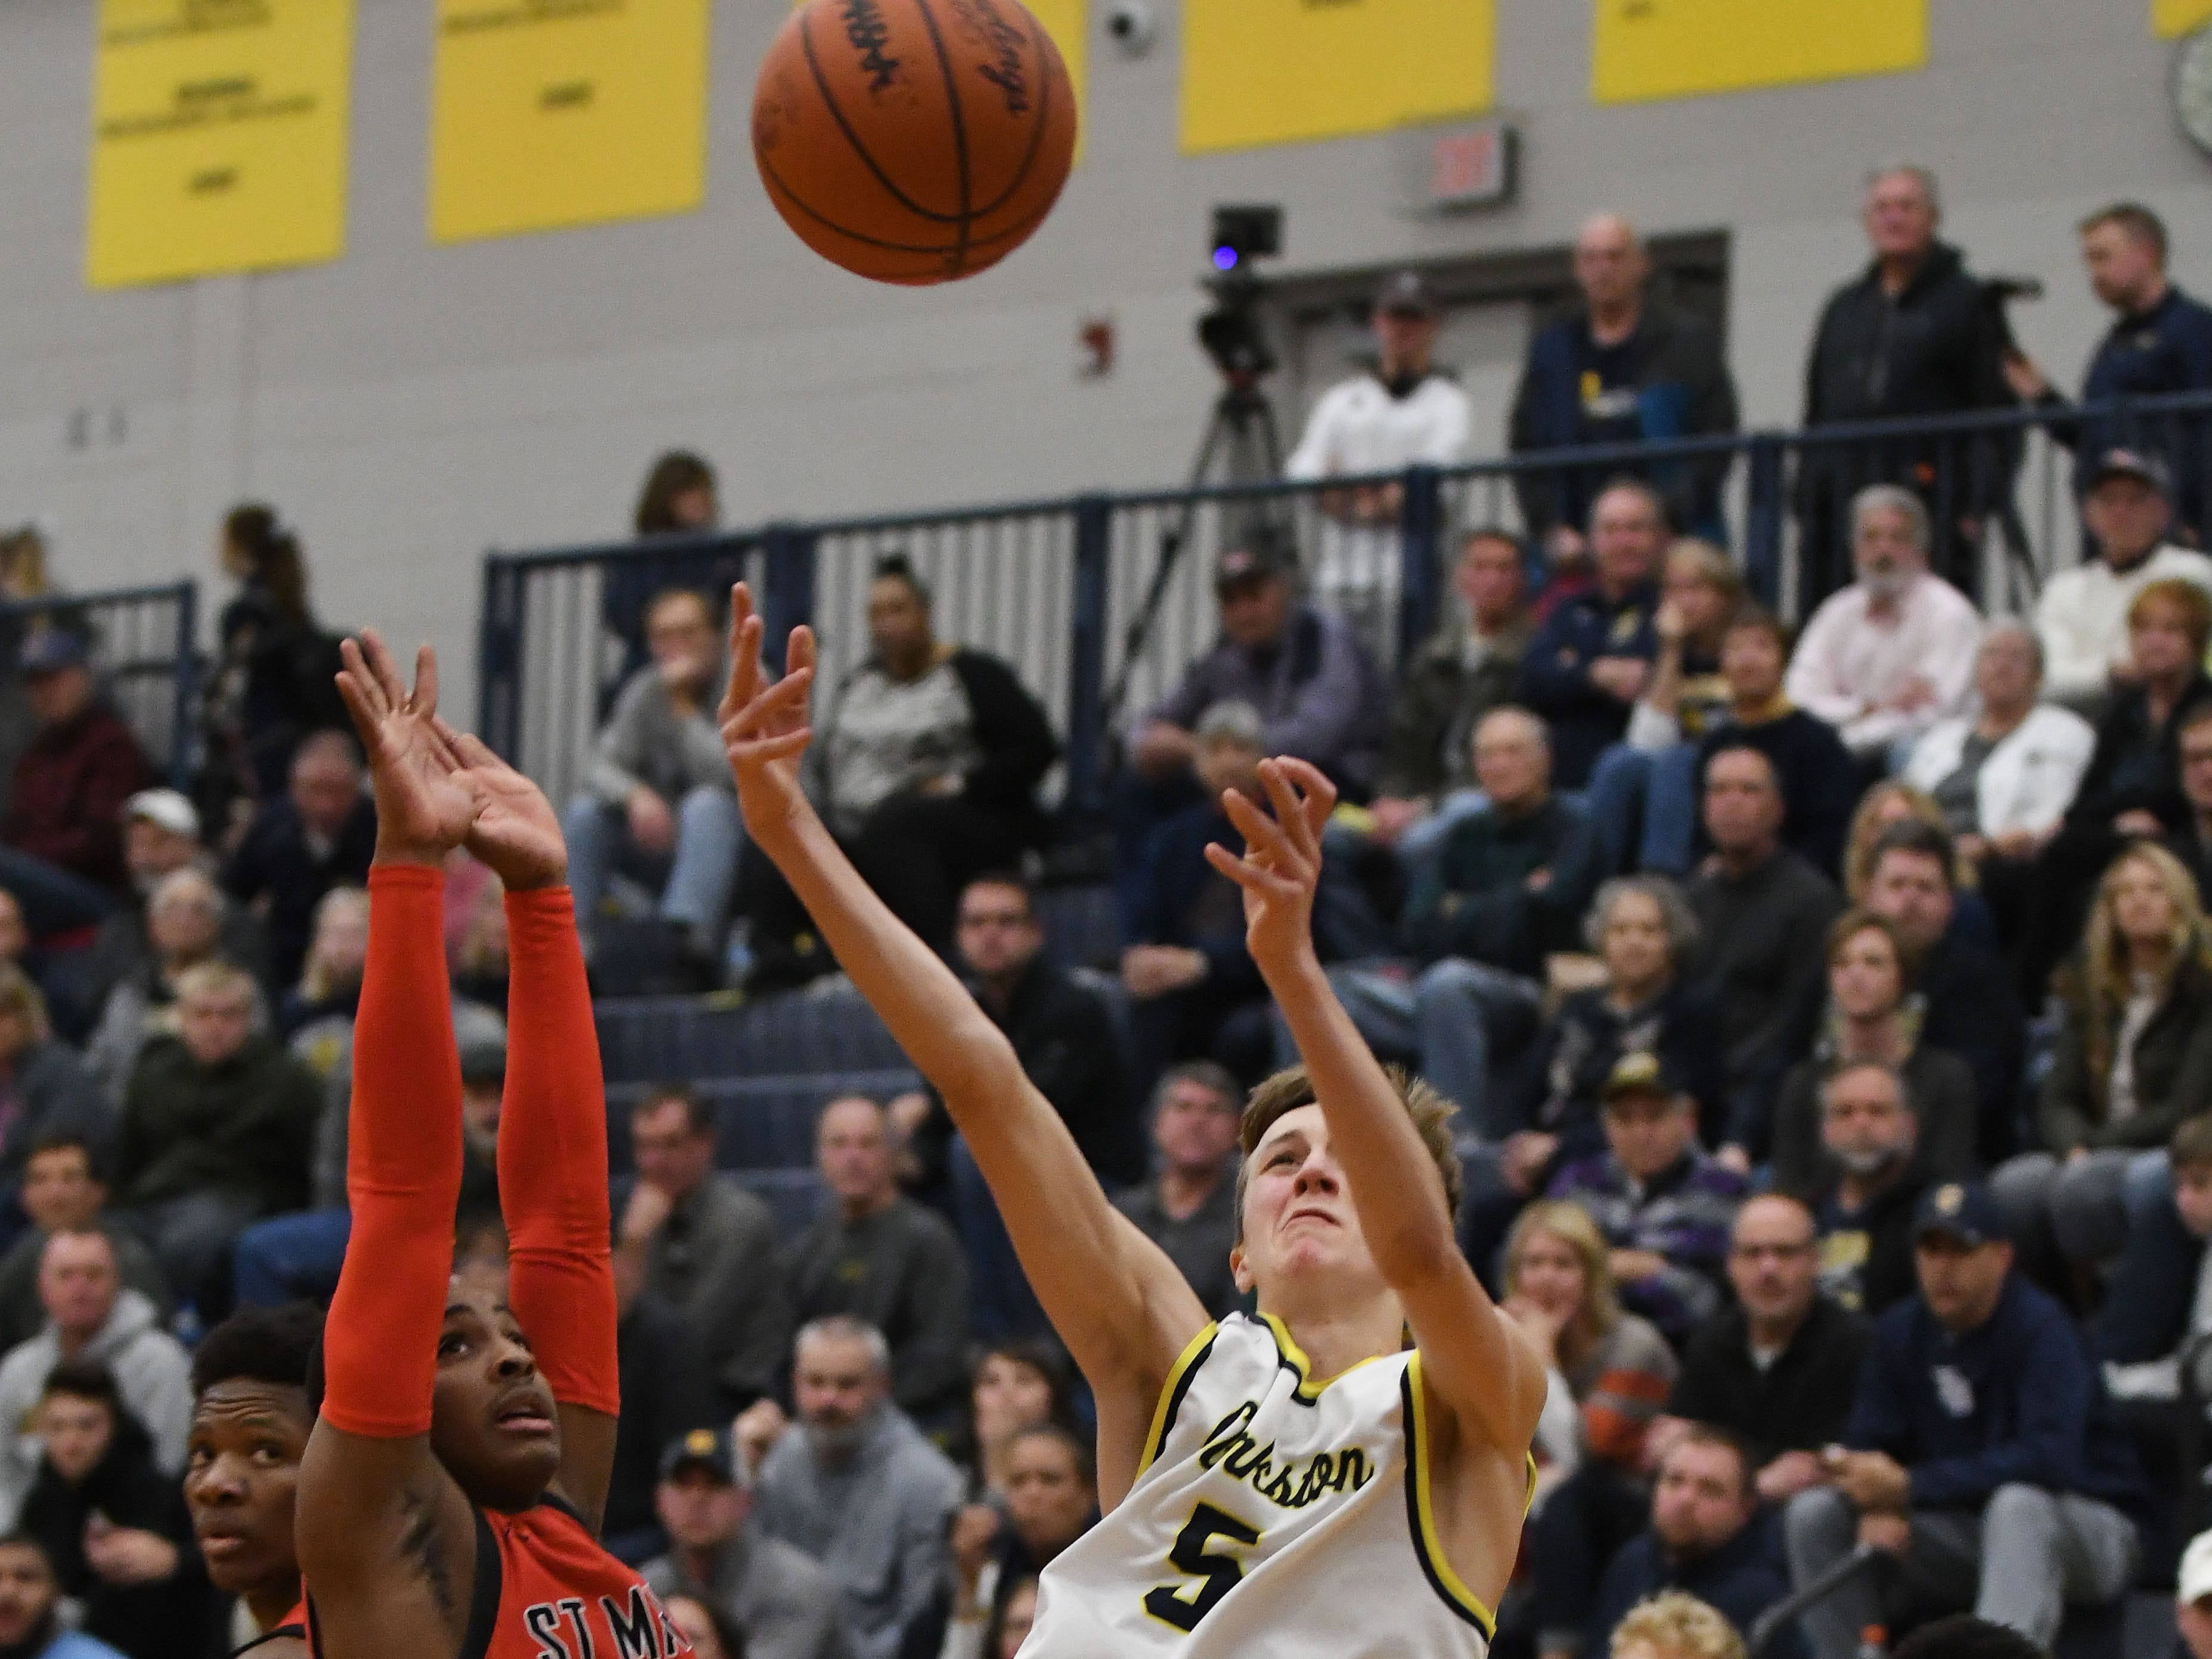 Clarkston's Desmond Mills-Bradley puts up a falling shot that goes in and one in the third quarter.